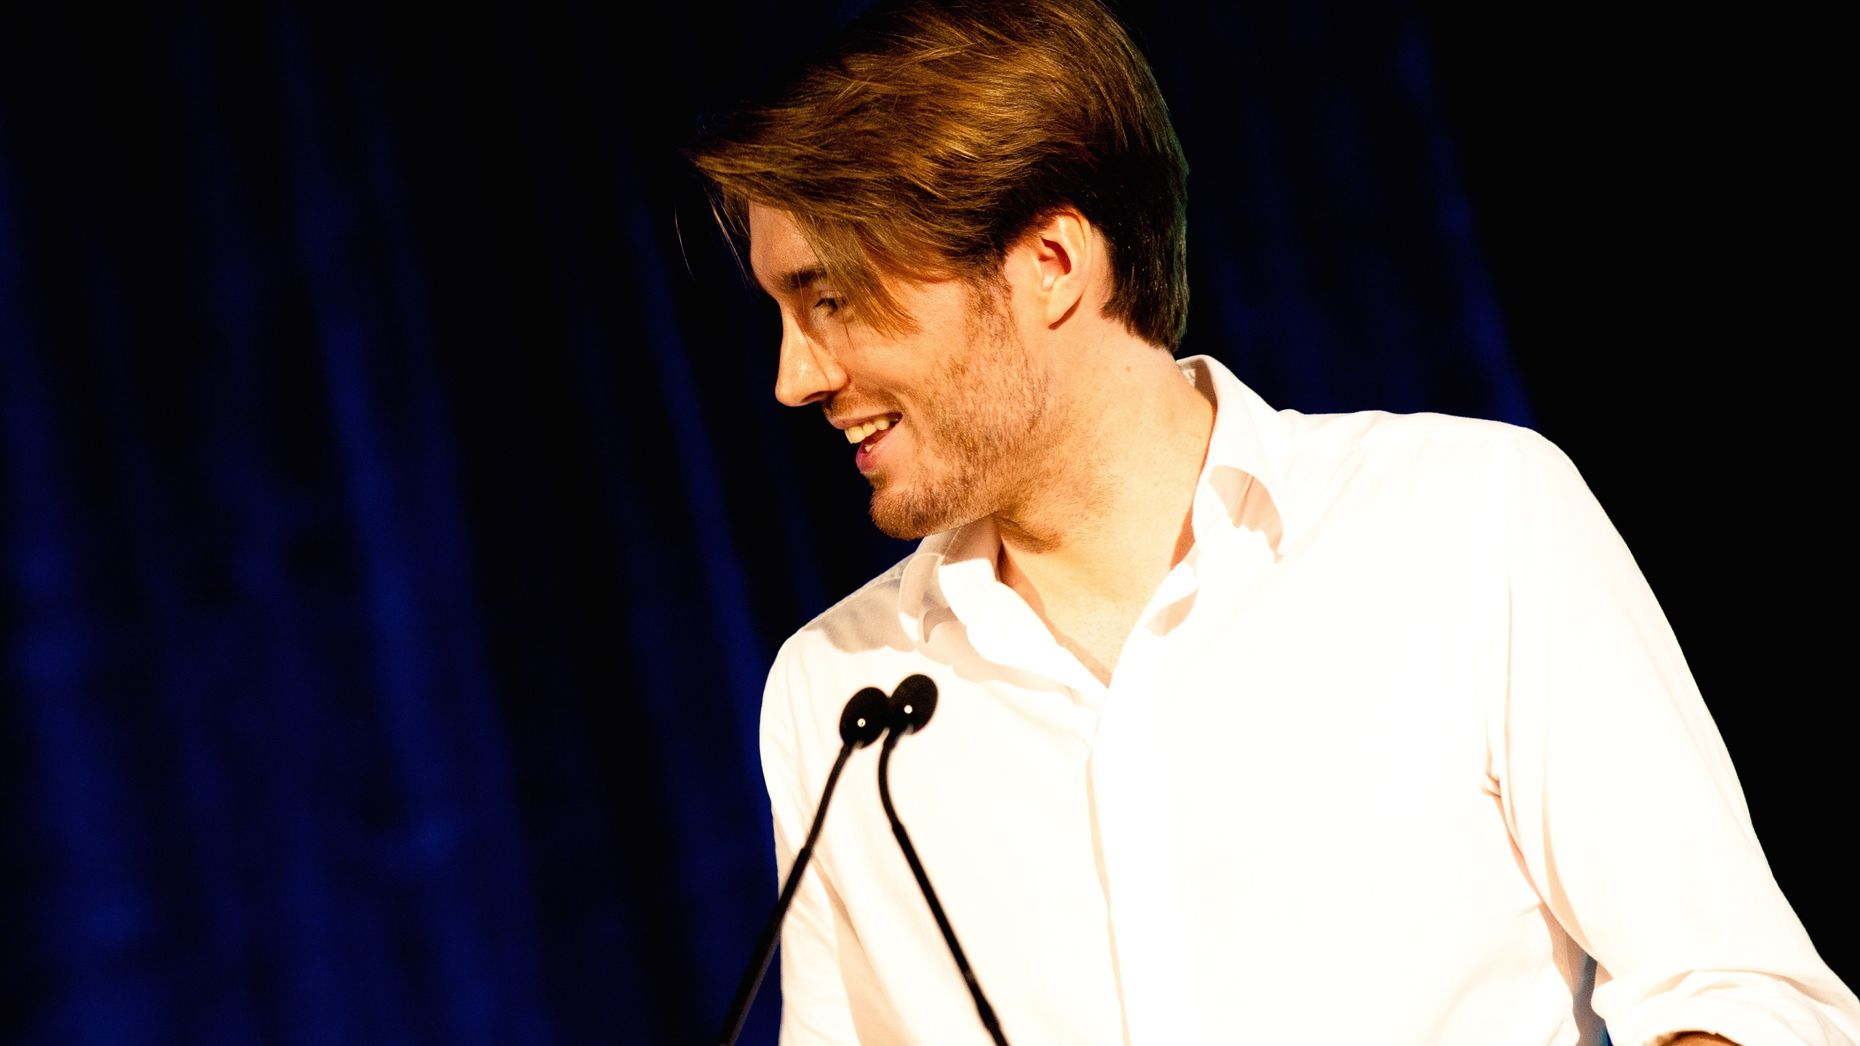 Mashable founder Pete Cashmore. Photo by Flickr/Josh Hallett.